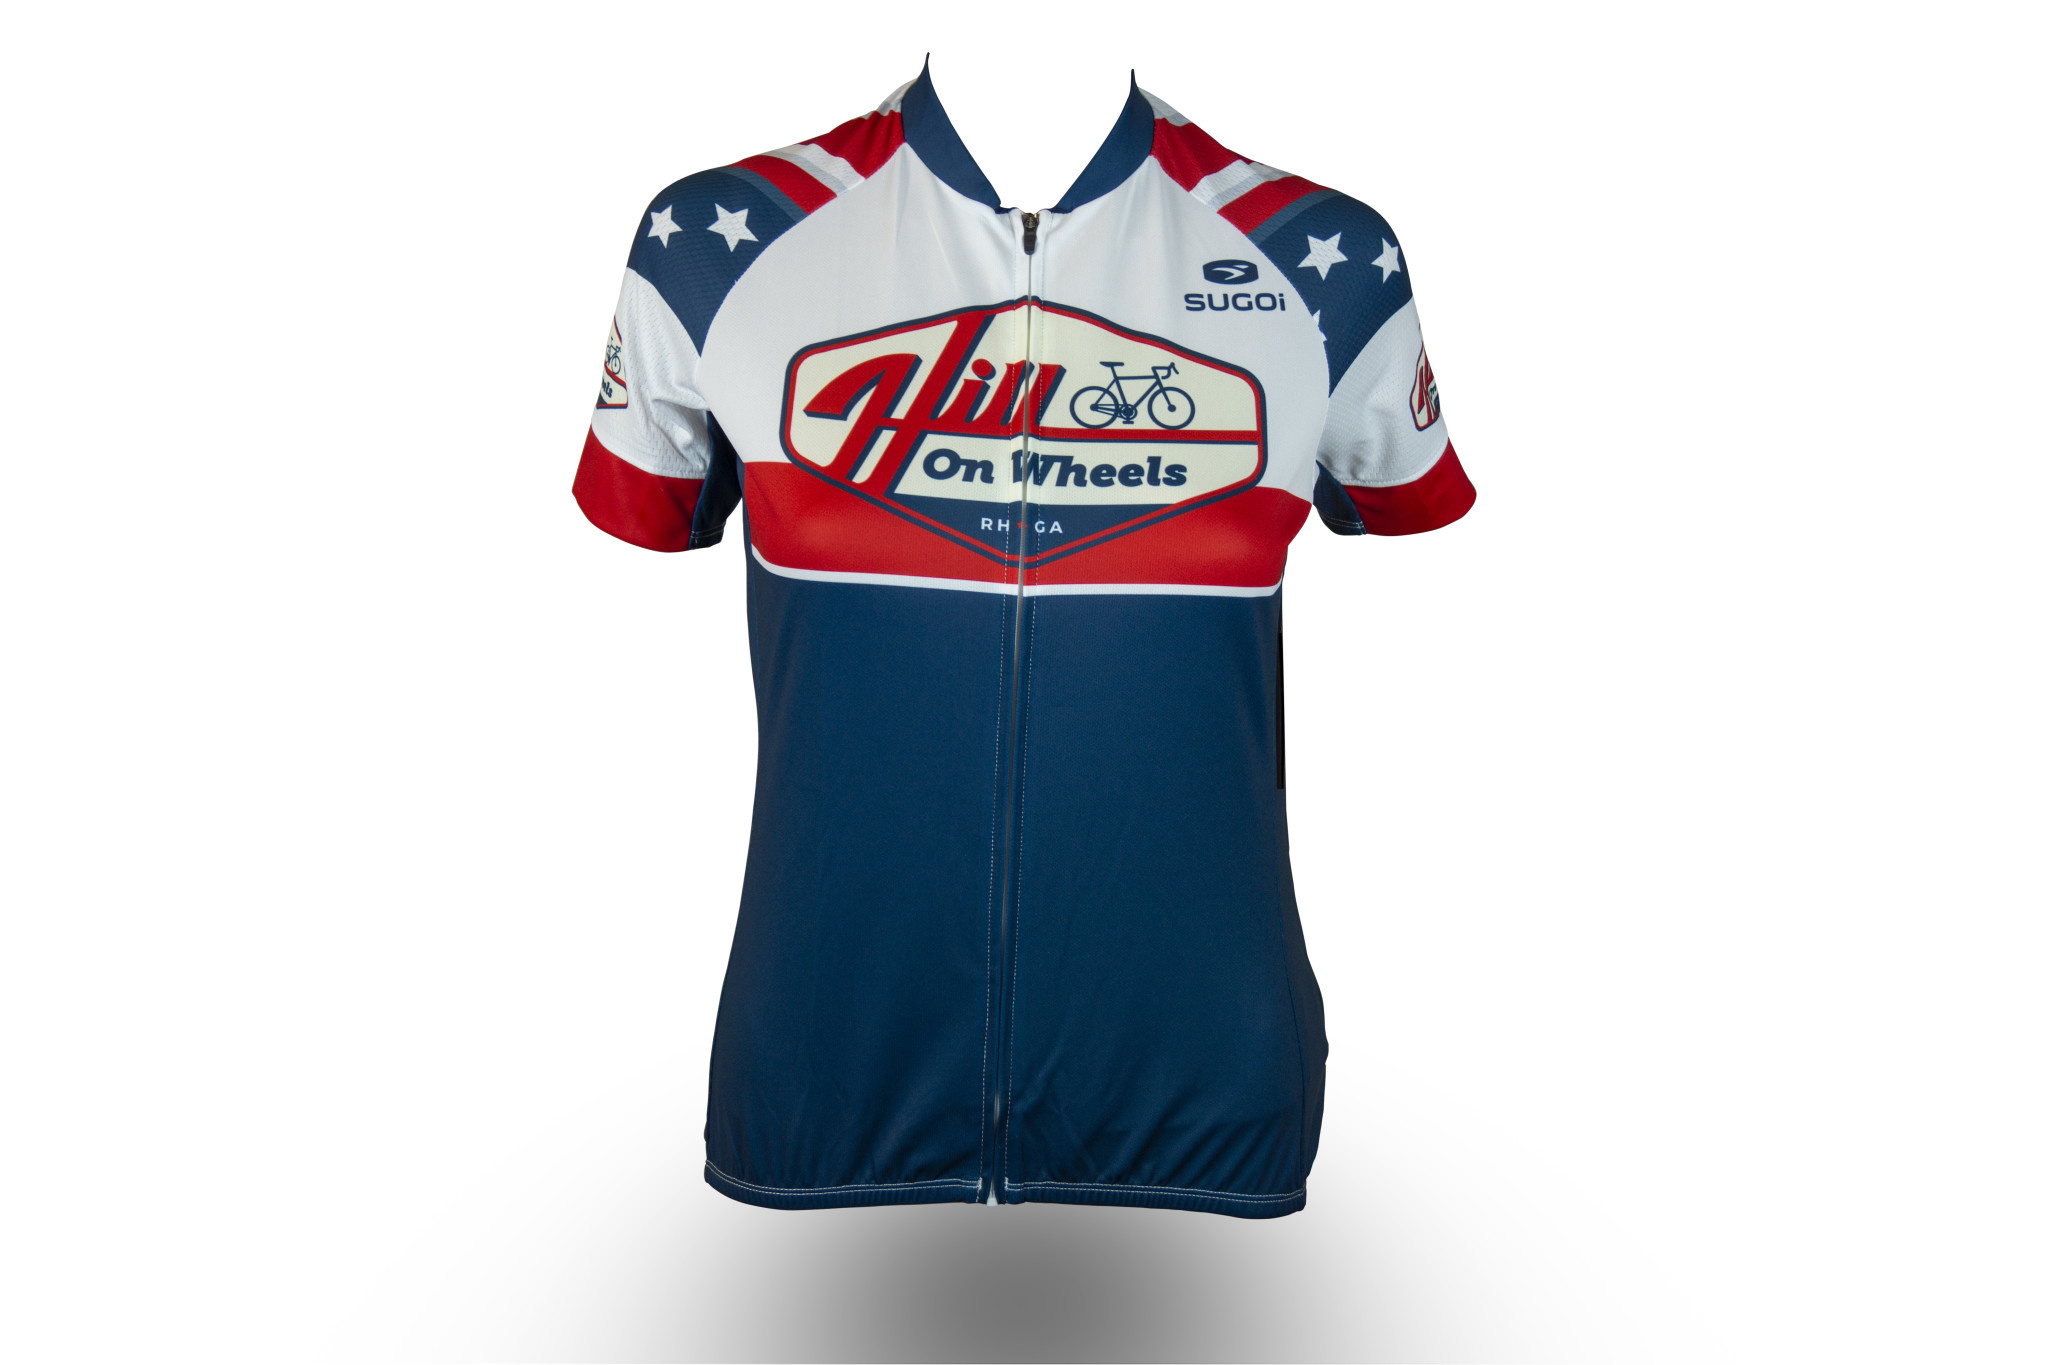 SUGOI HOW EVOLUTION WOMEN'S JERSEY